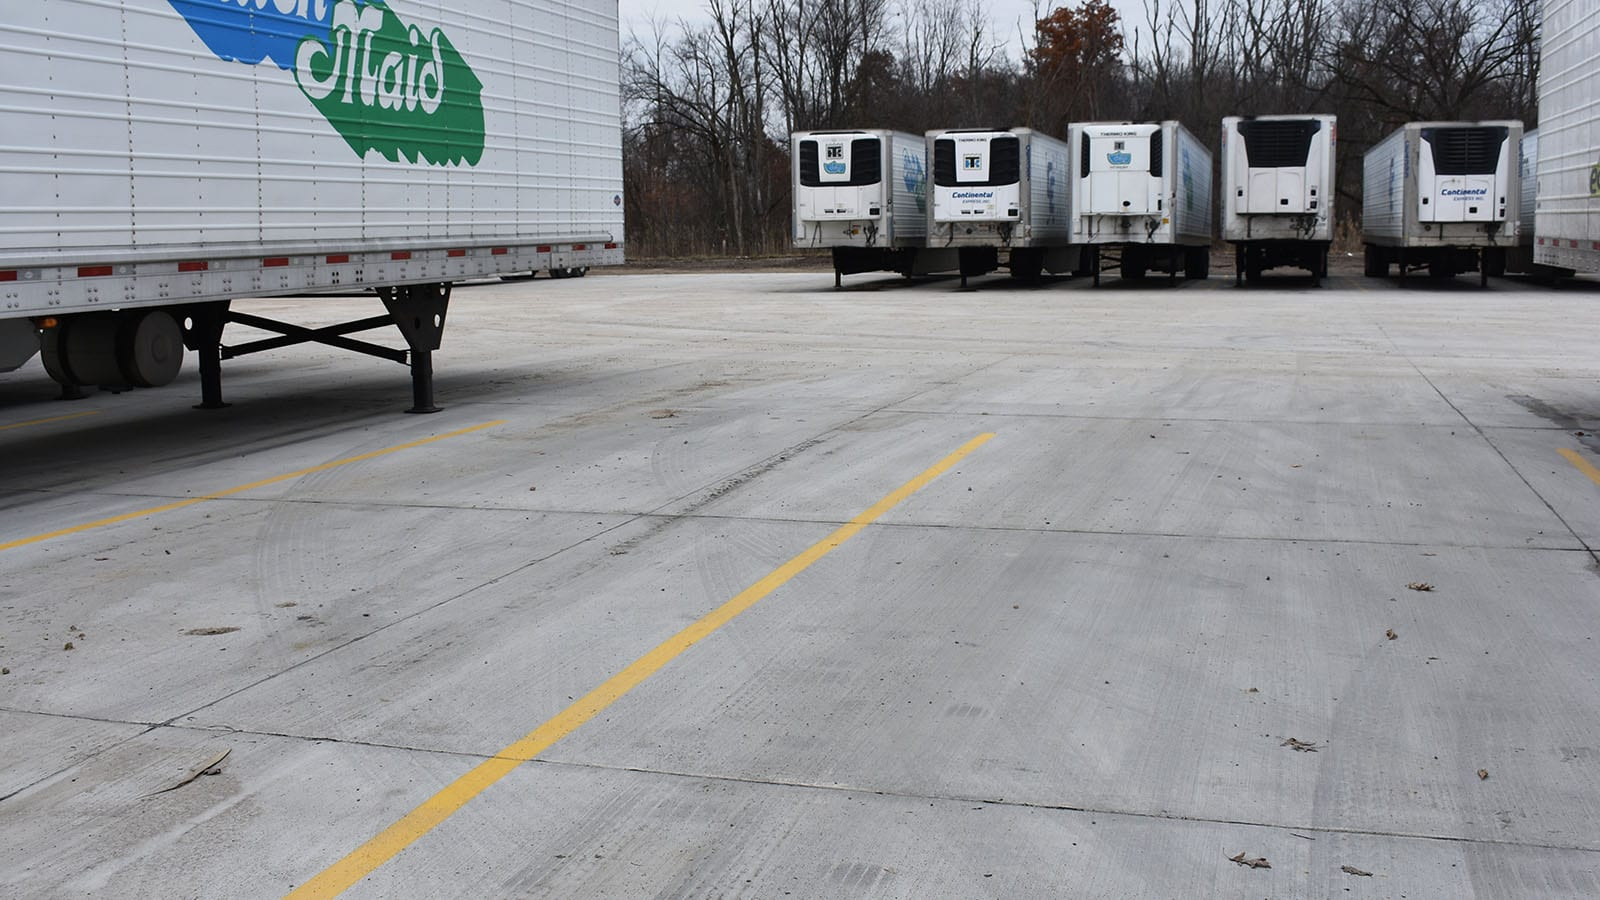 Our finished concrete lot expansion project in use by Nestle in Streetsboro, OH